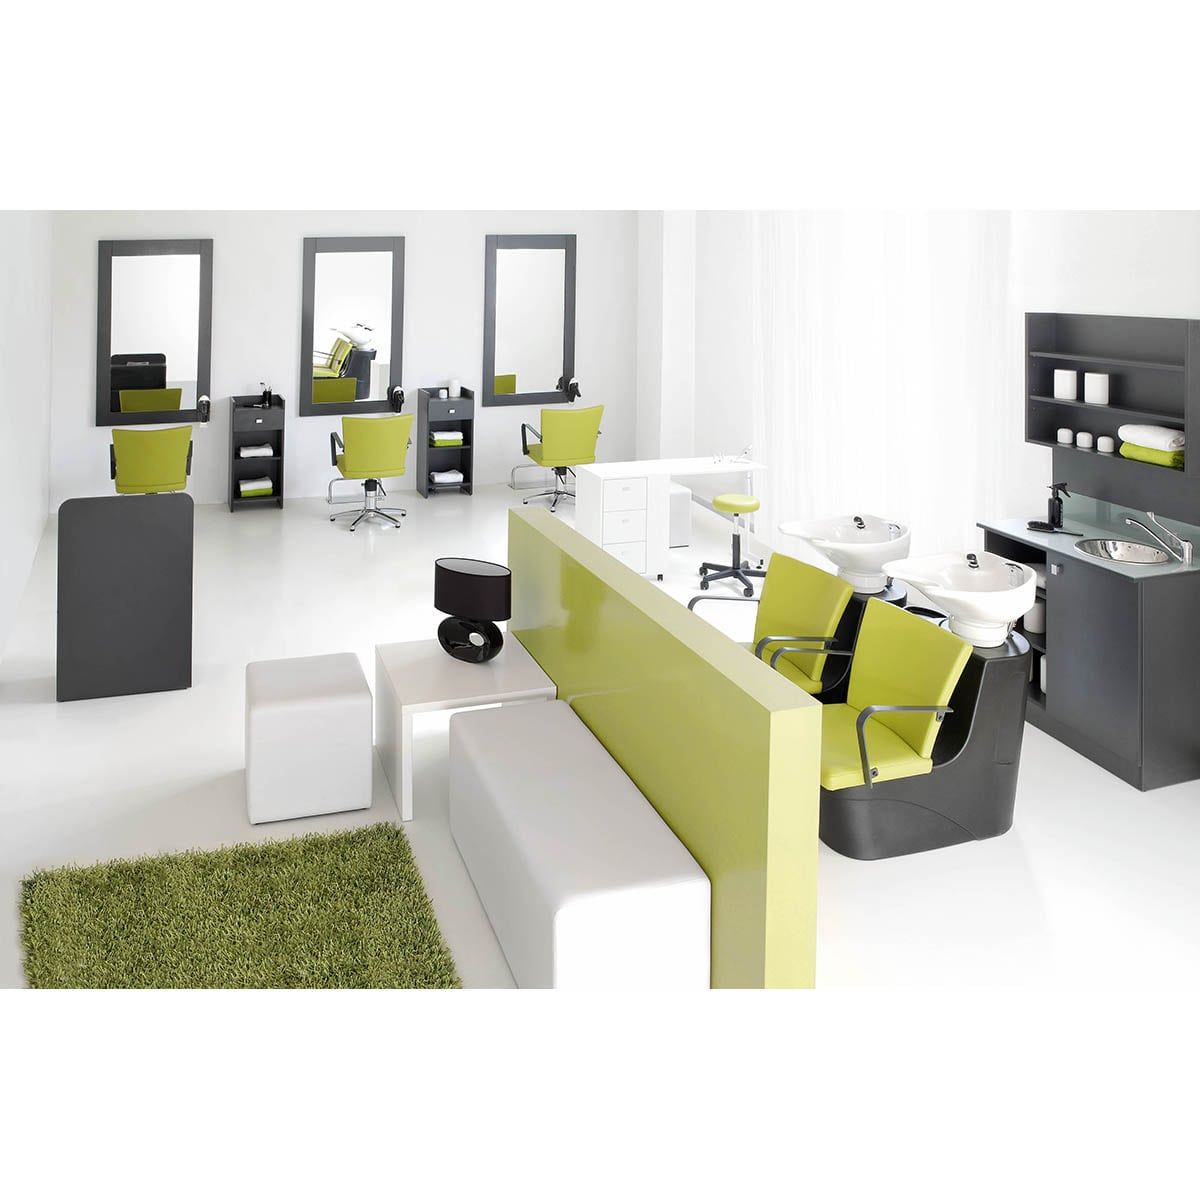 les avantages d un mobilier de salon de coiffure design euro bsn. Black Bedroom Furniture Sets. Home Design Ideas